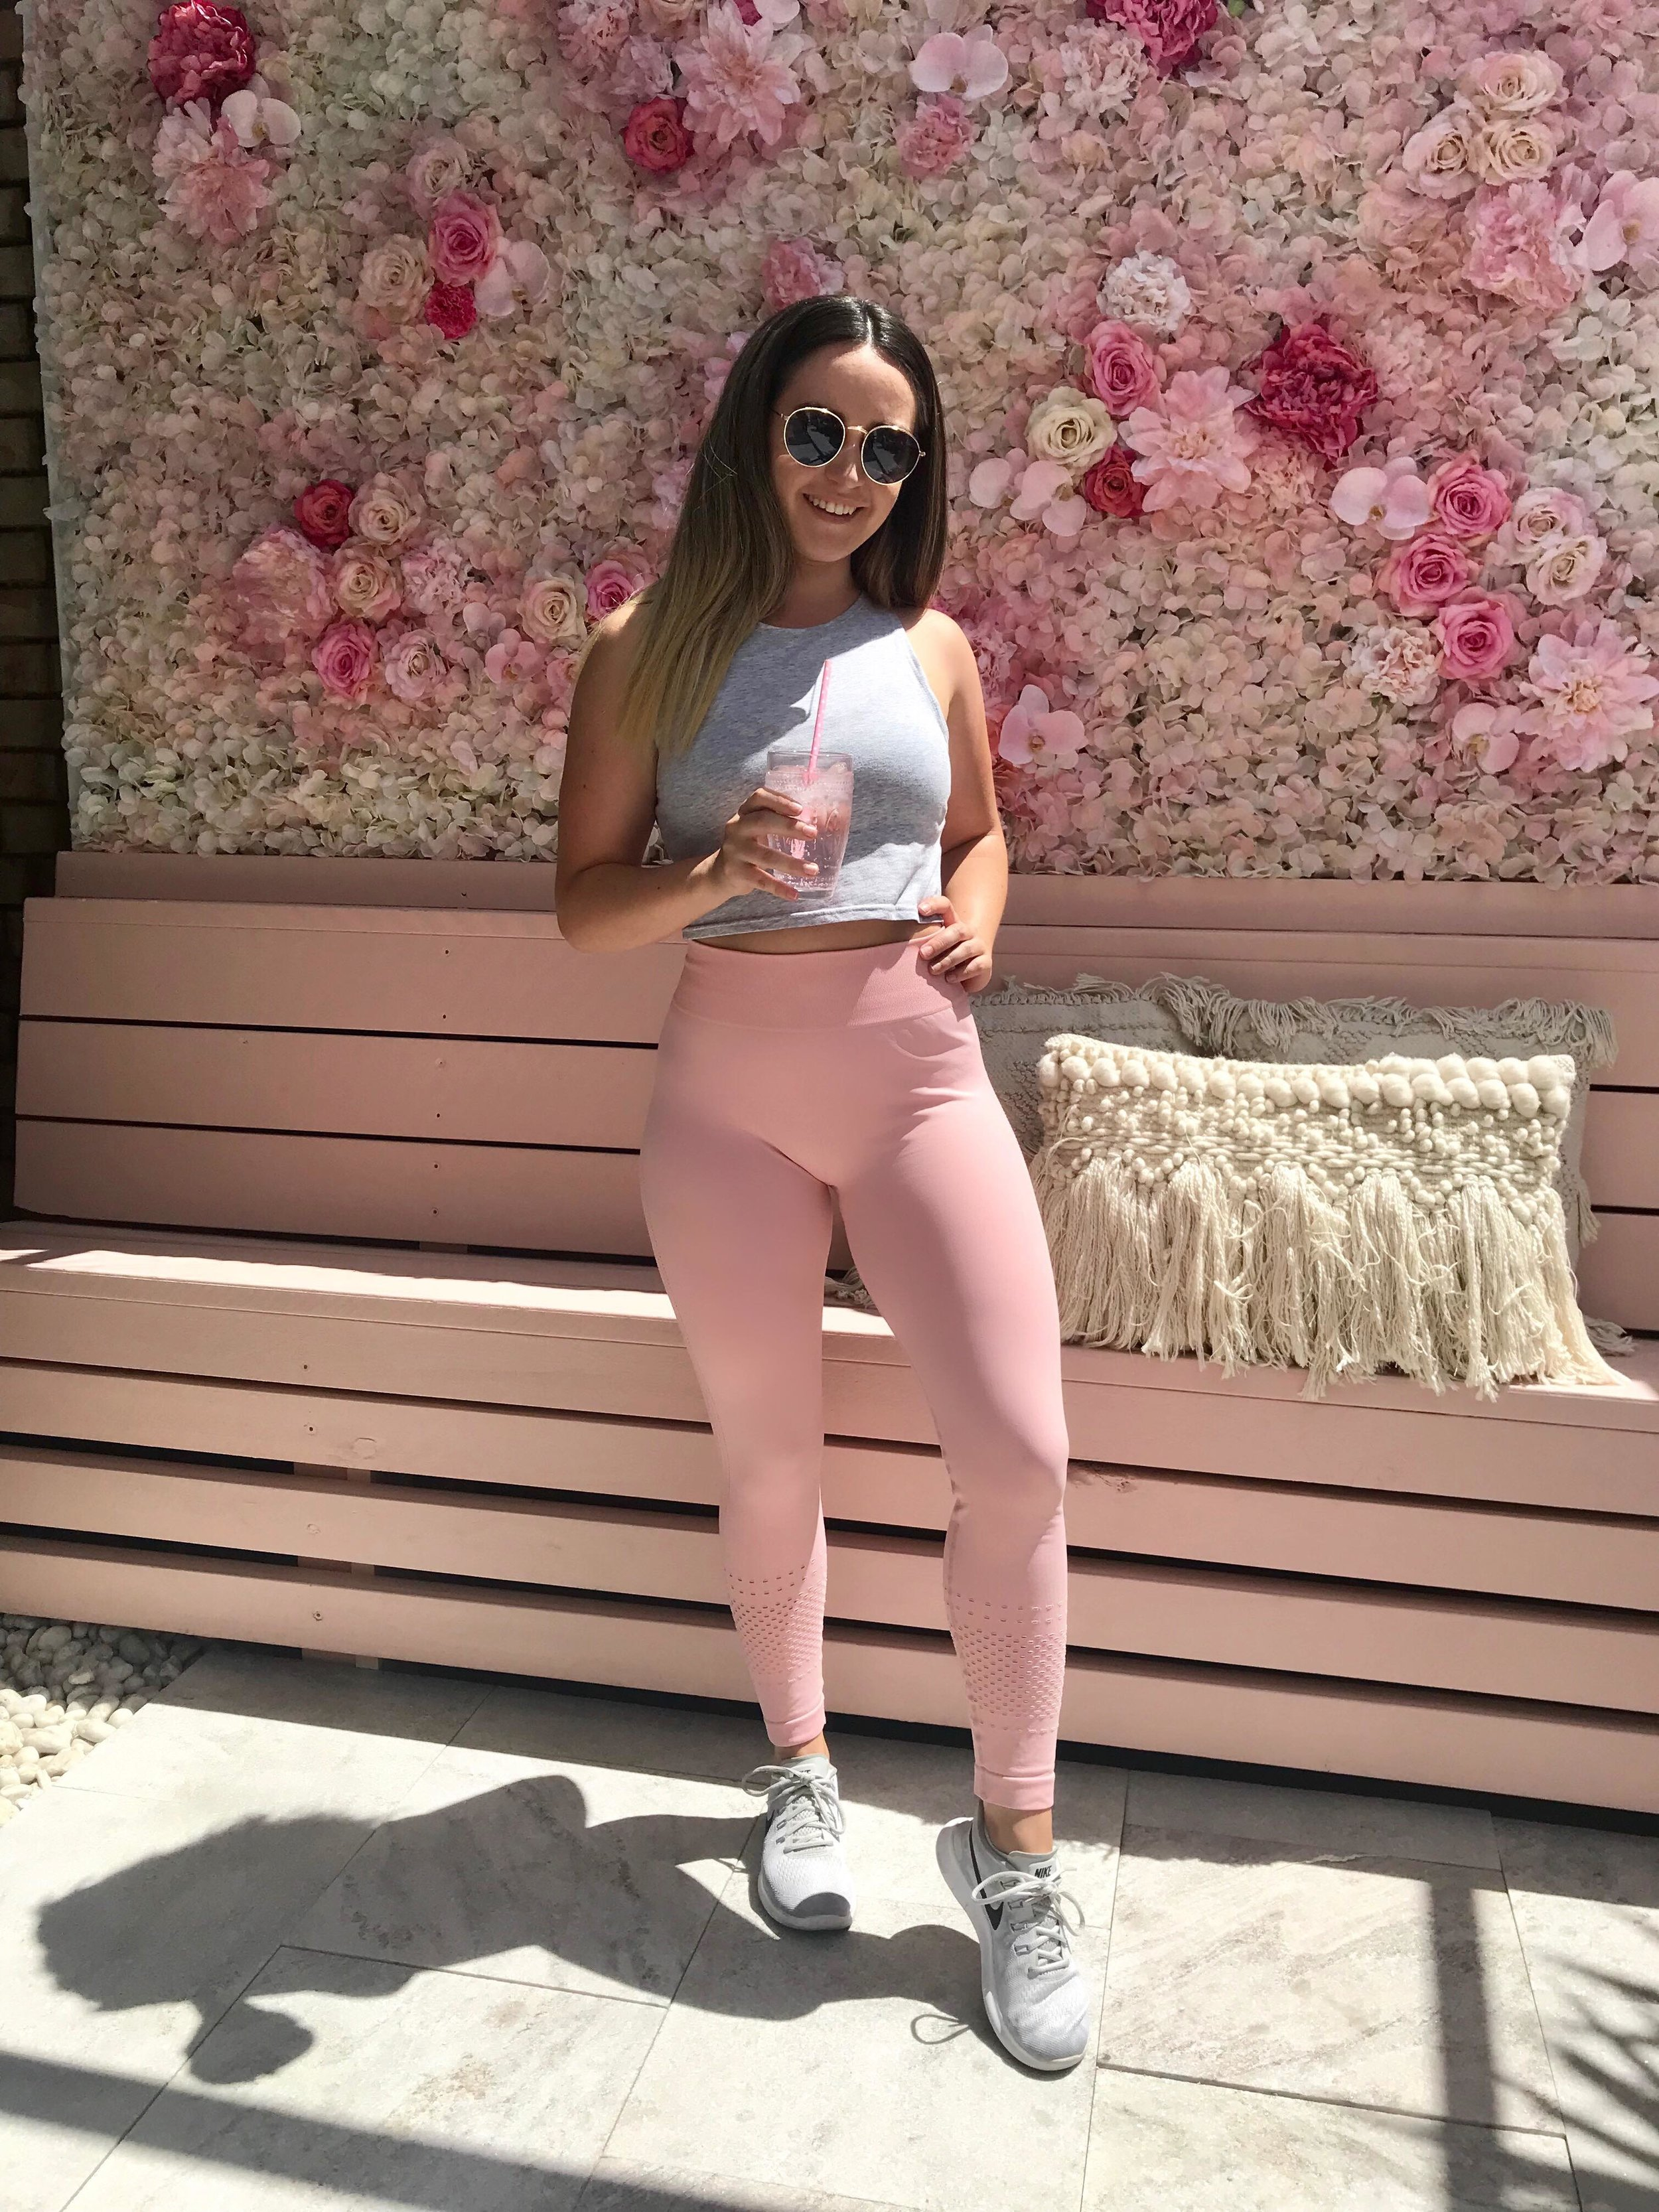 LJ McDonough - LJ is a PT with a degree in Exercise and Movement Science. She is passionate about helping young women feel confident in their own bodies and helps them reach their personal version of healthy.INSTAGRAM